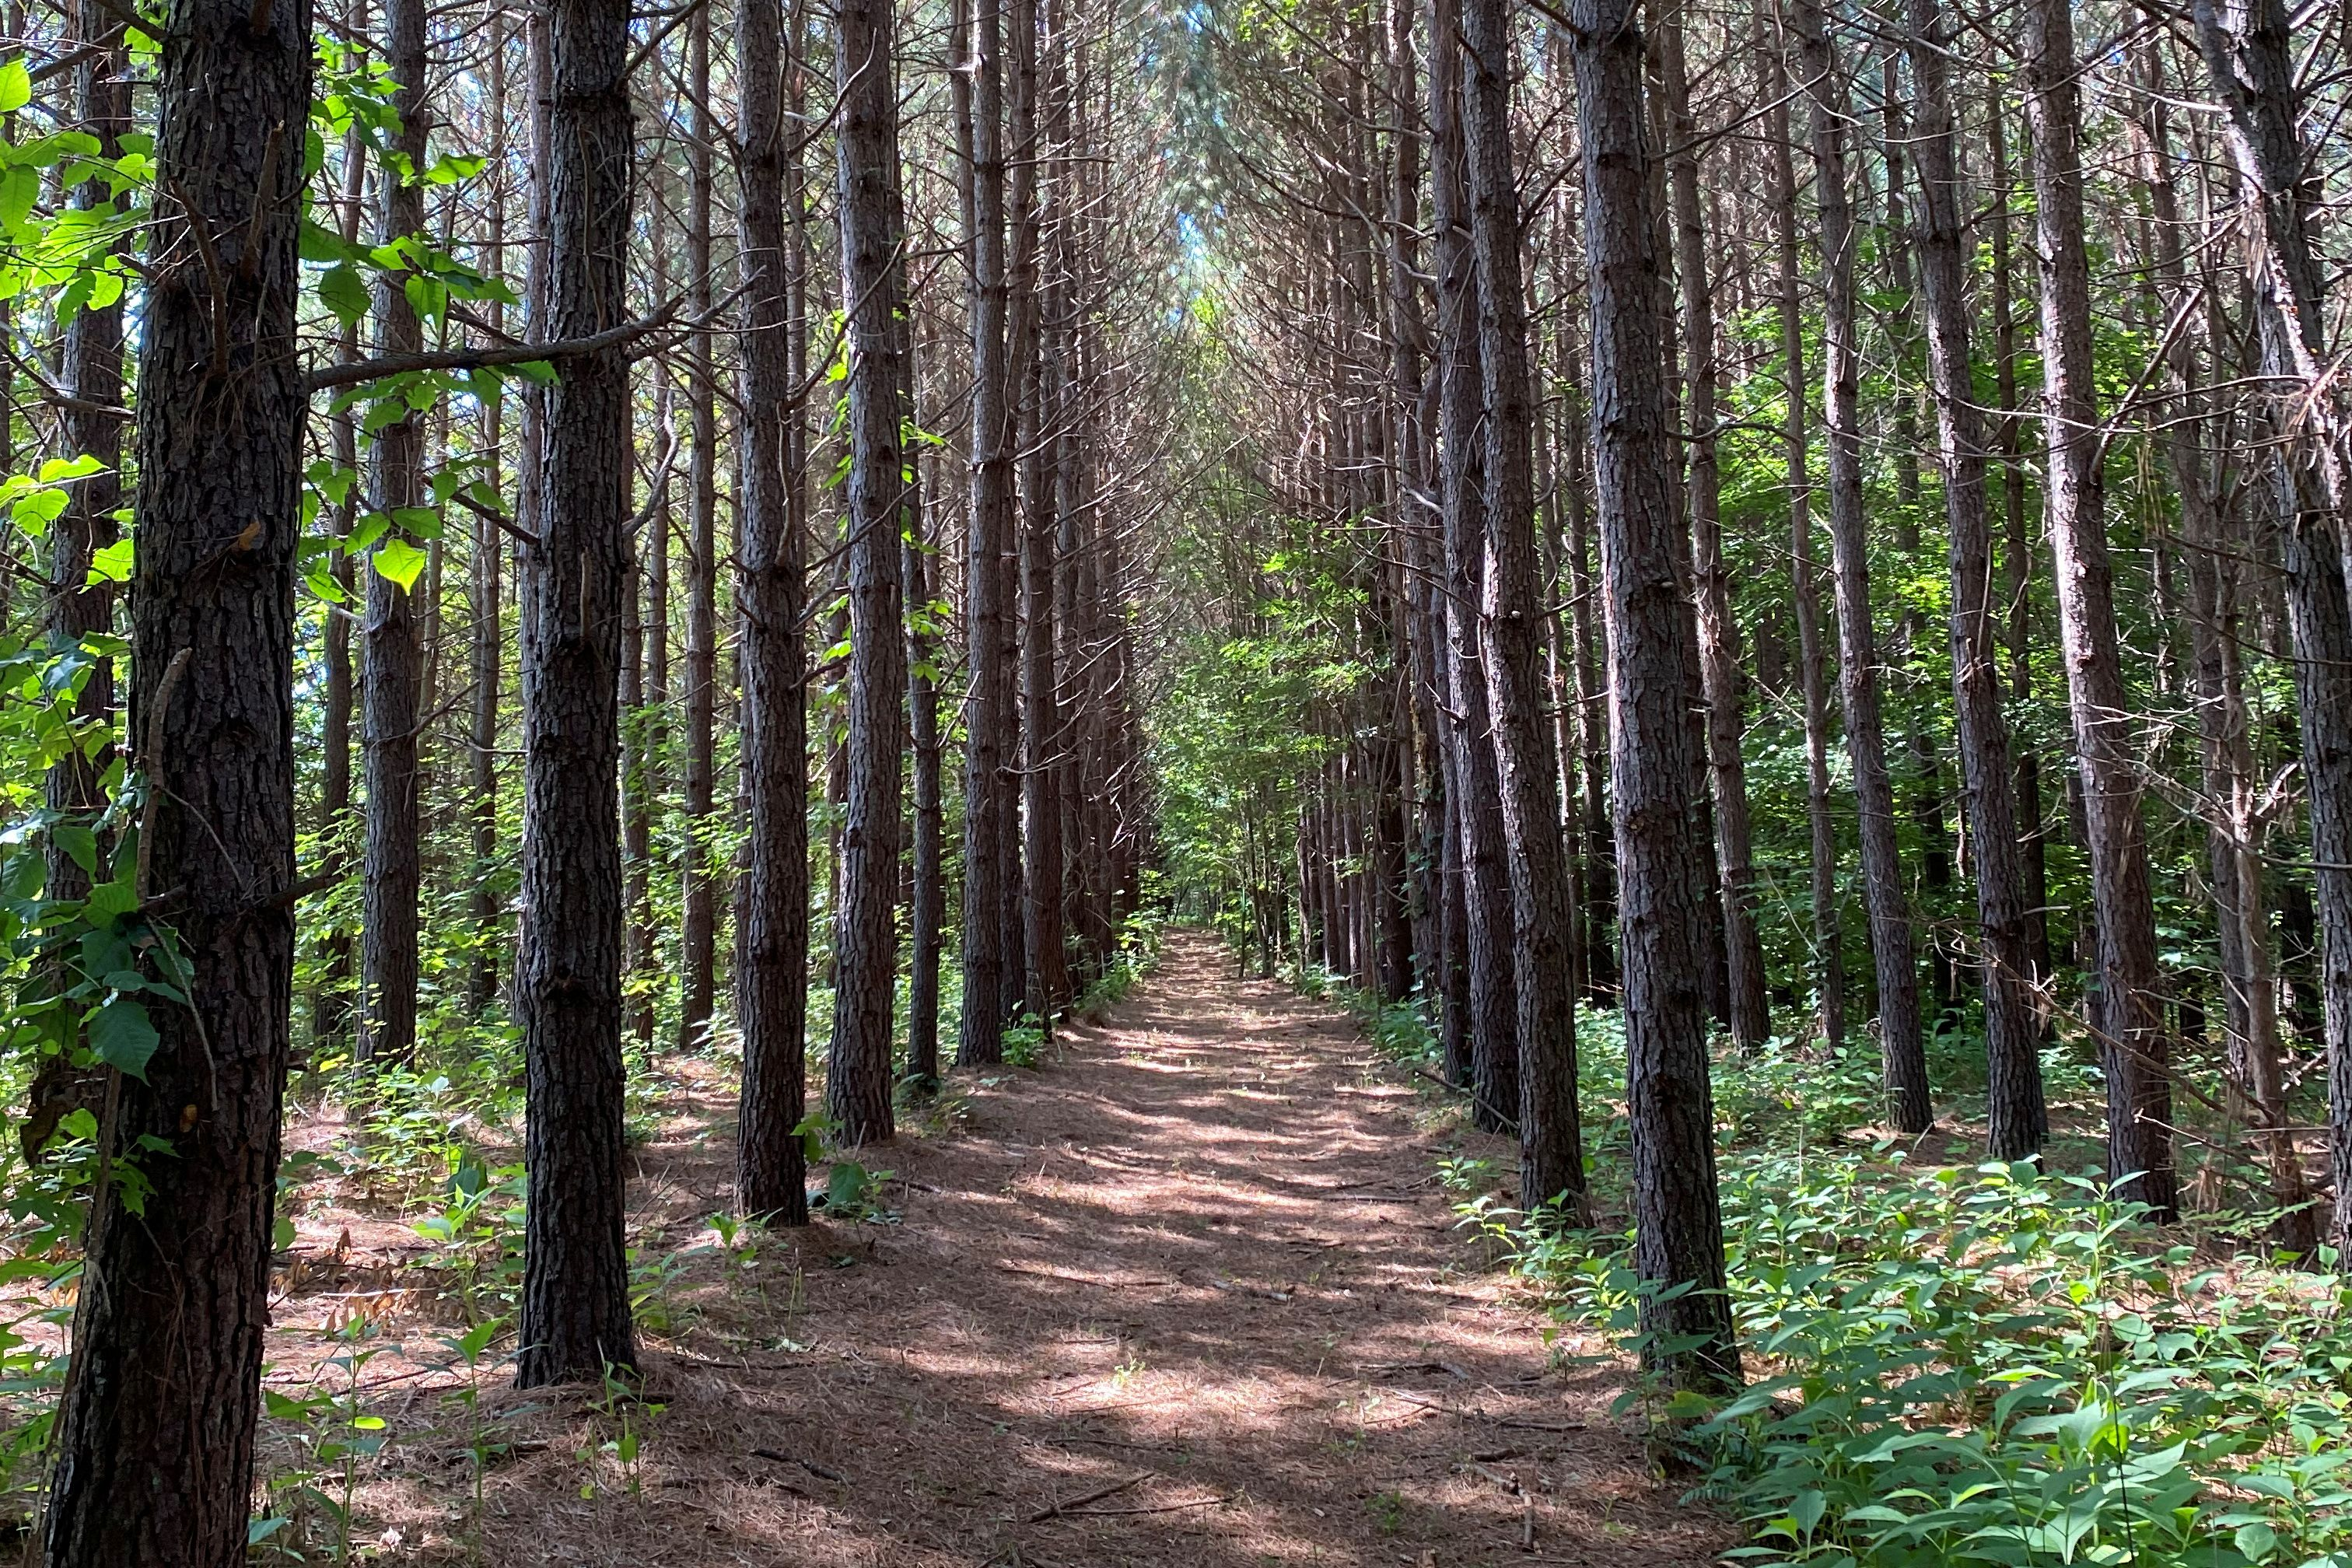 A trail though a forest, which is planned for development of Piedmont Lithium's mine, is seen in Gaston County, North Carolina, U.S., July 15, 2021.    REUTERS/Ernest Scheyder/Files